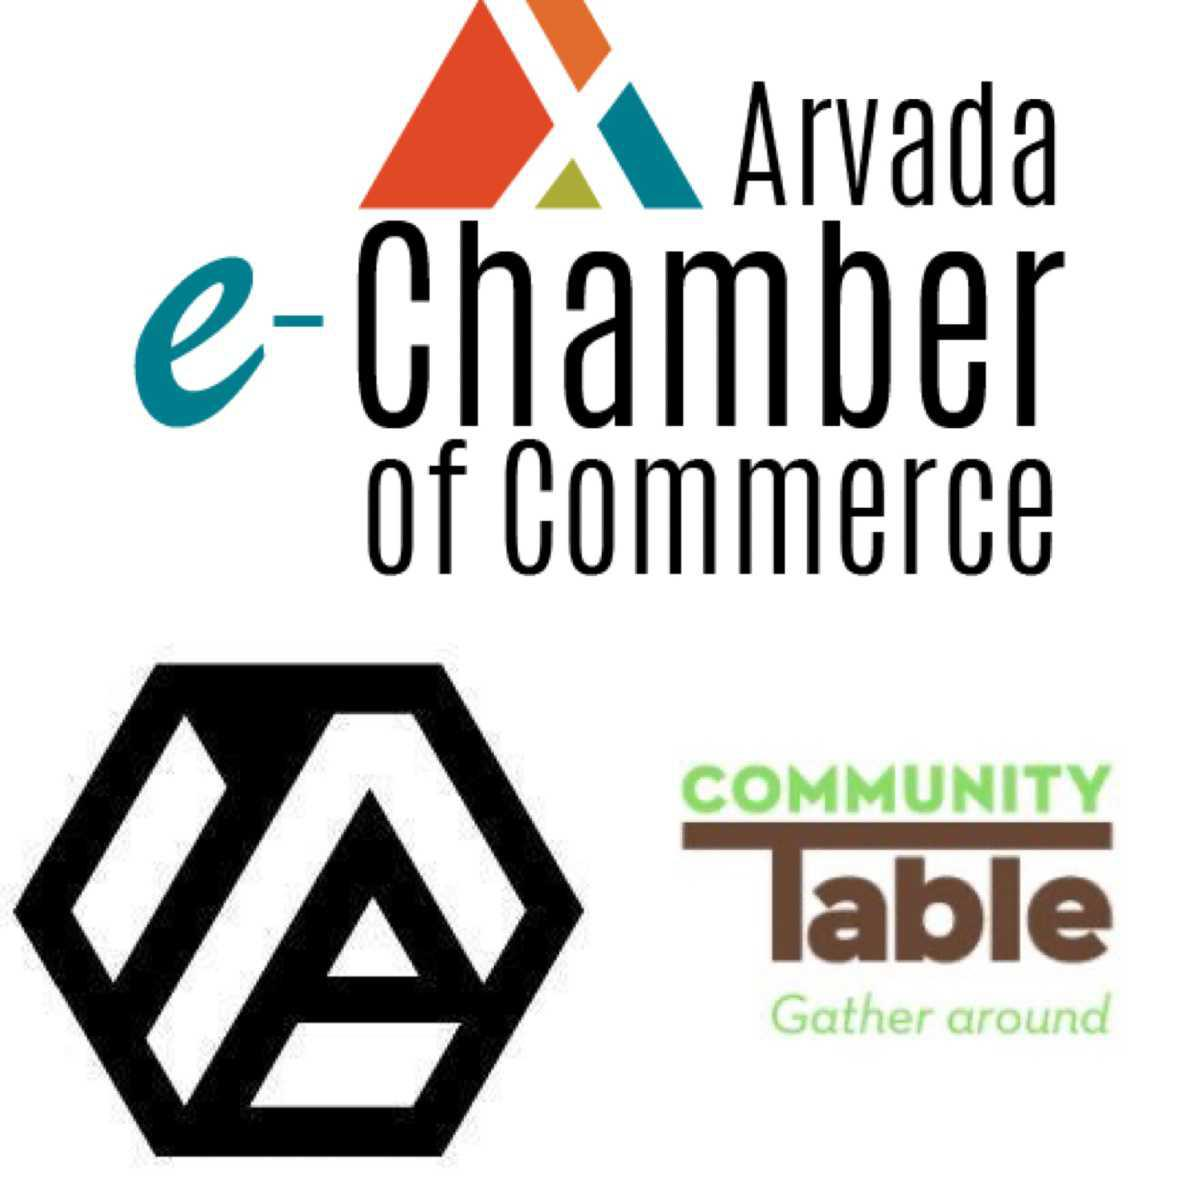 #ArvadaStrong: Arvada Chamber, City of Arvada & Community Table all offering free services and support through COVID19